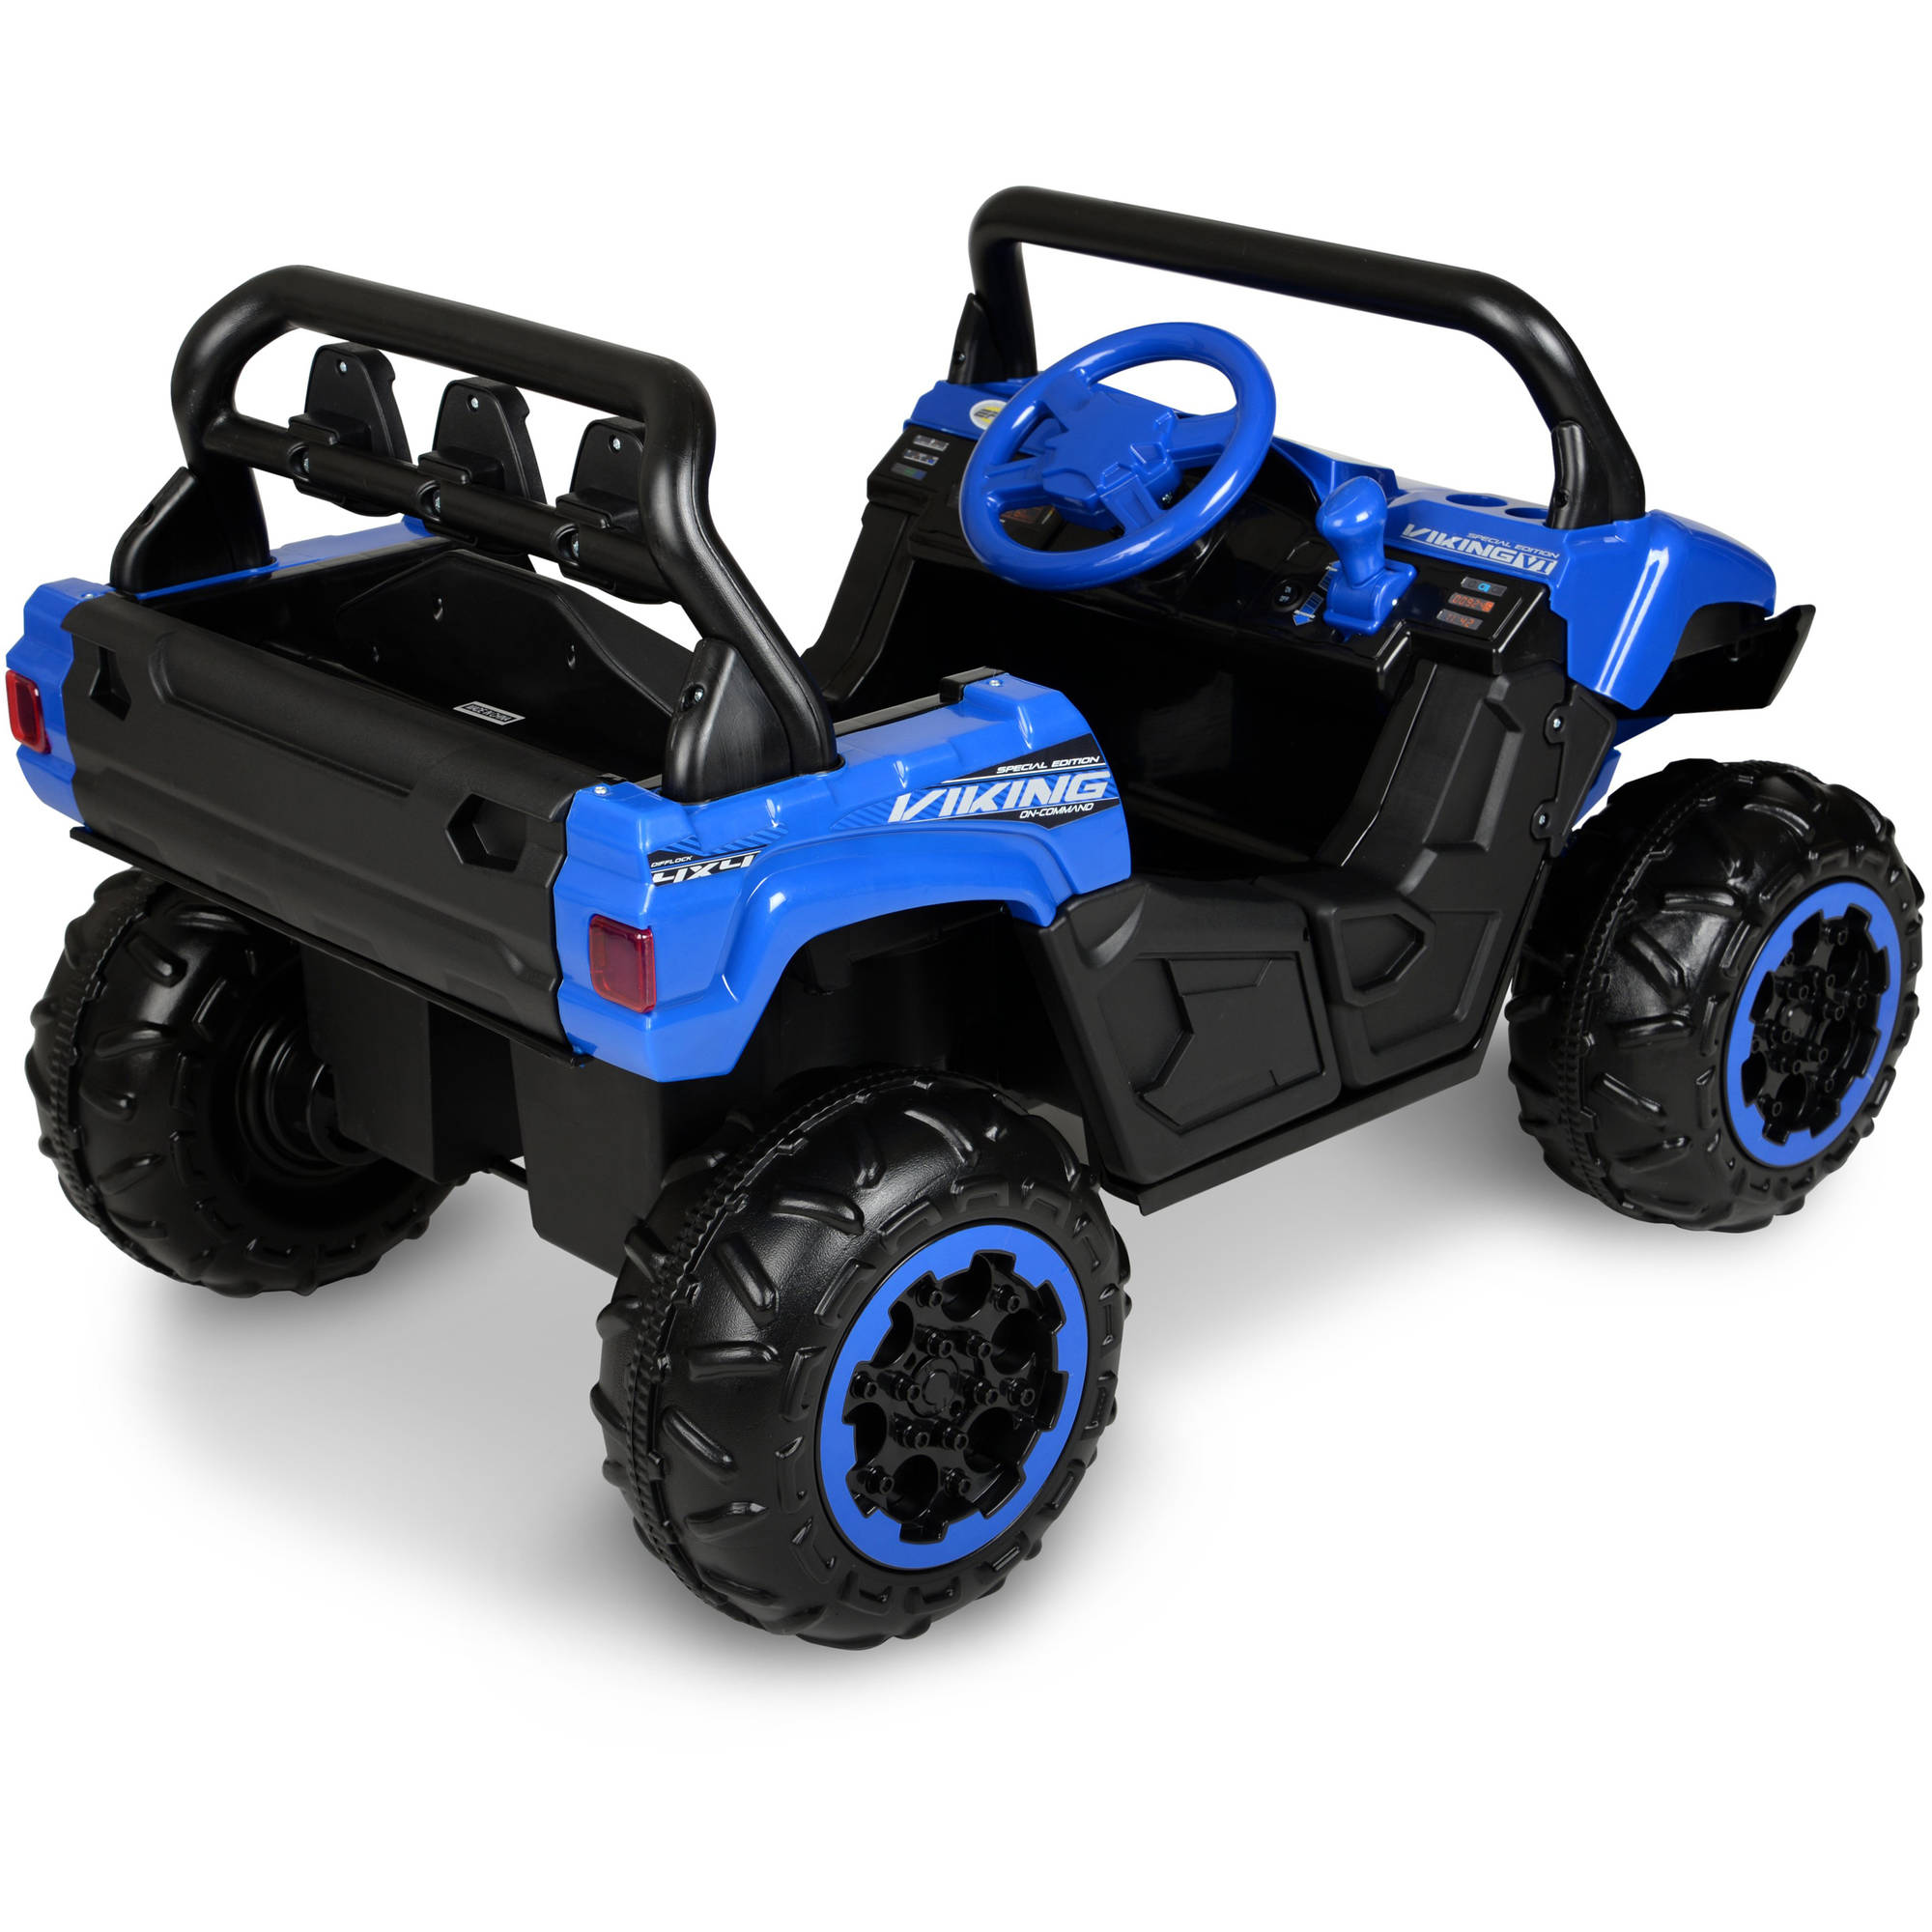 6 Volt Yamaha Viking Battery Powered Ride-On - Hours of fun